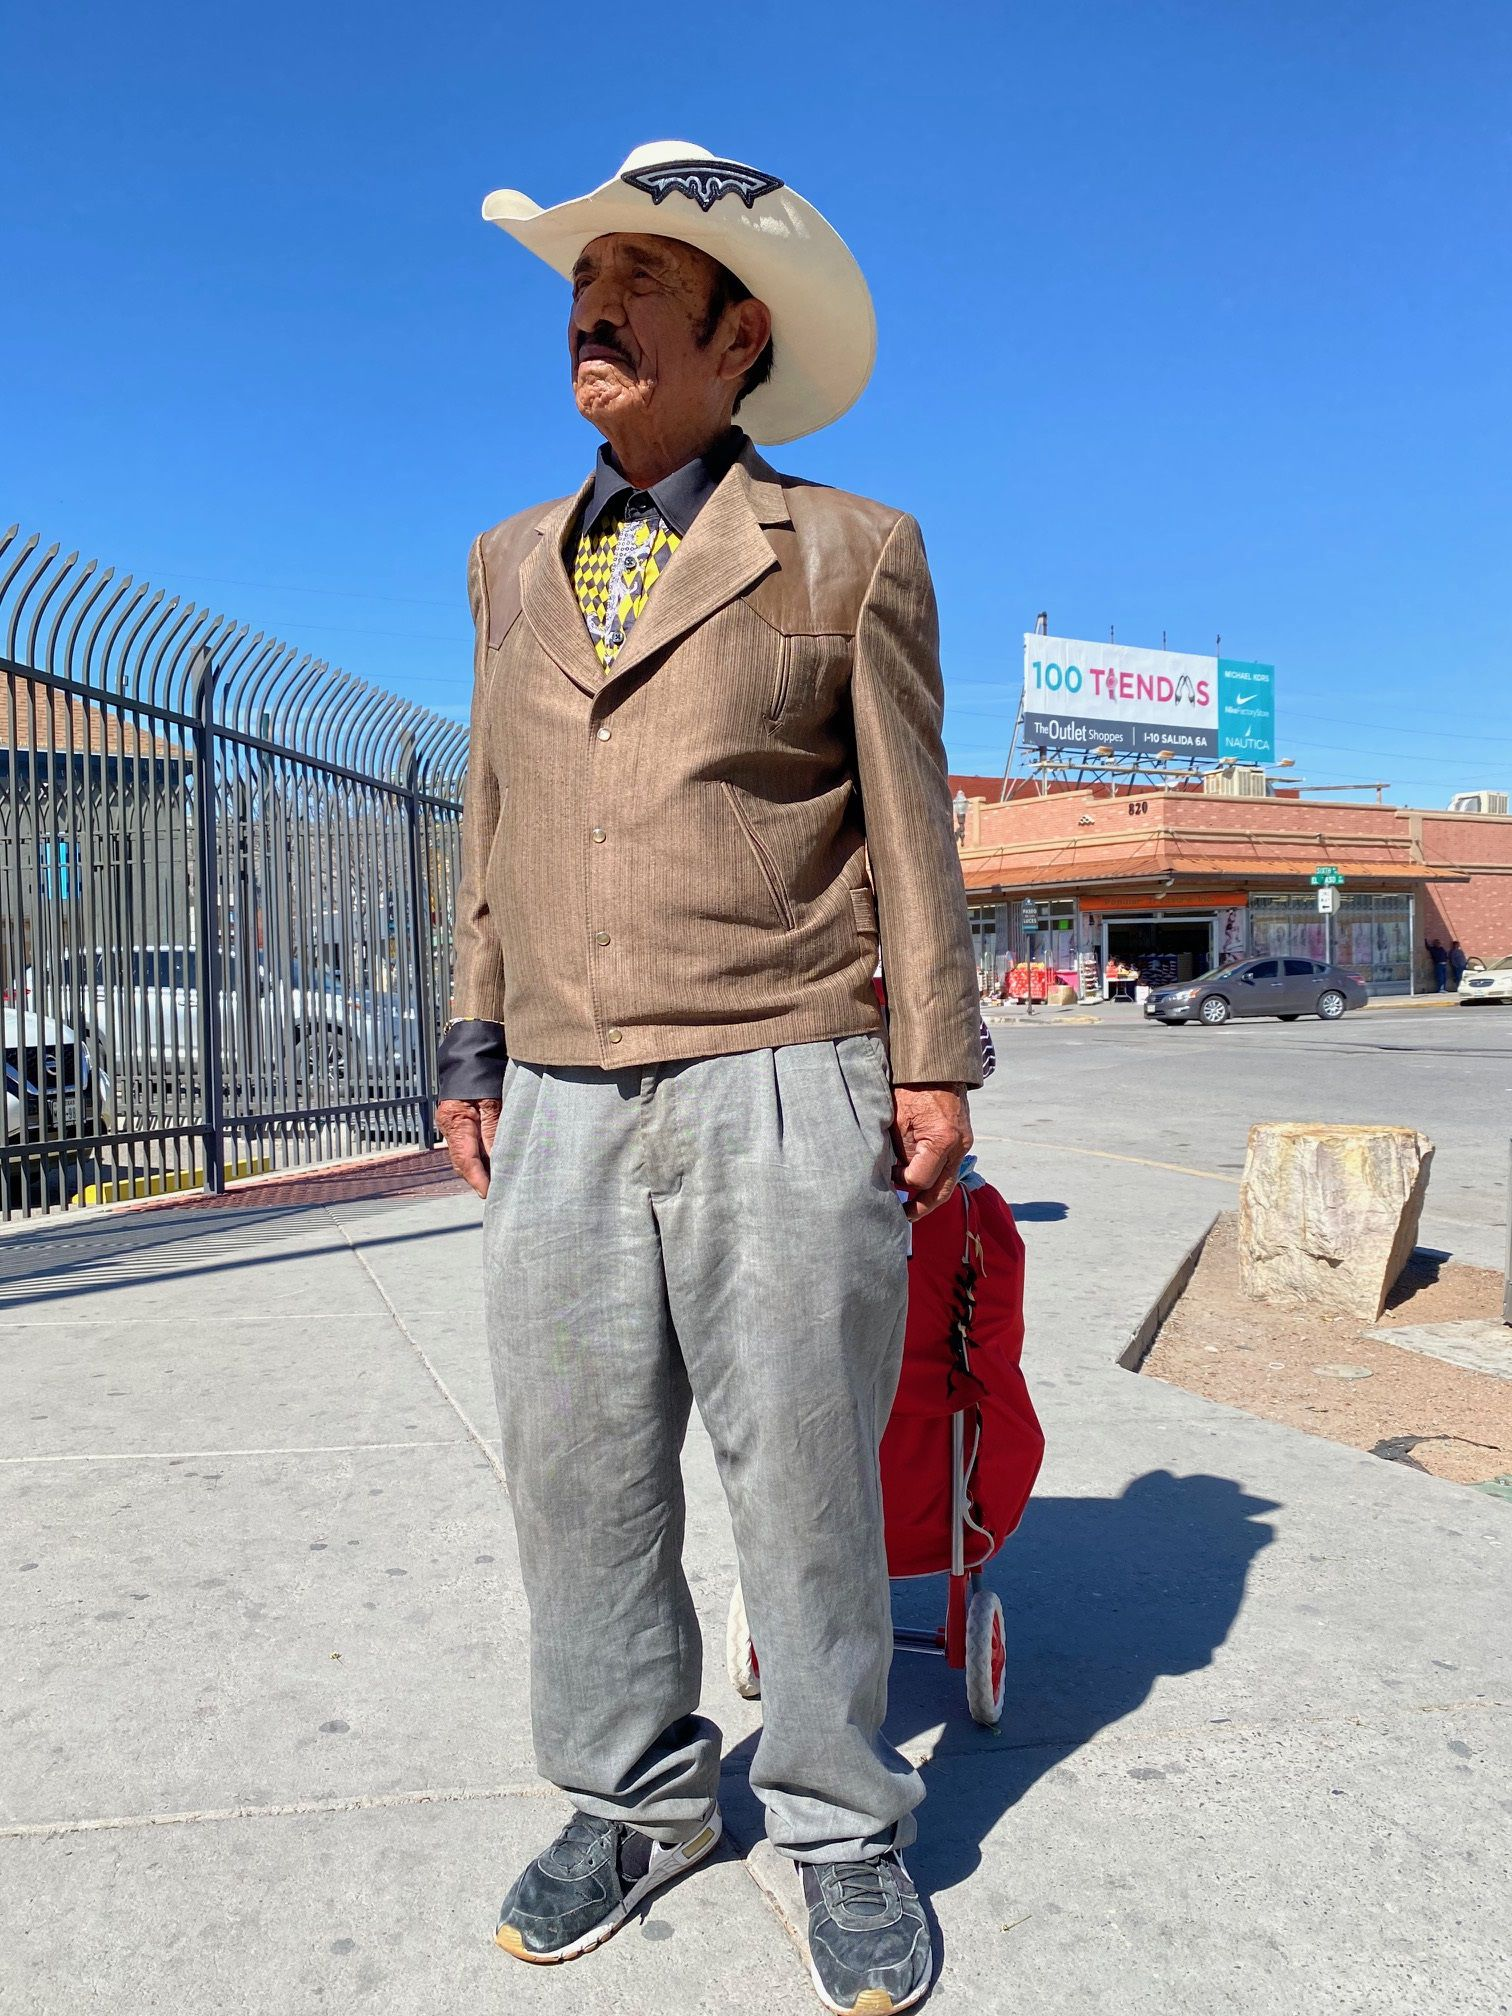 """Leonardo Alvarado, 87, a singer-songwriter, crosses back to Ciudad Juarez in Mexico. He-s thinking of writing a corrido, a form of ballad, about the coronavirus. """"Maybe I can help educate people about the seriousness,"""" he said."""